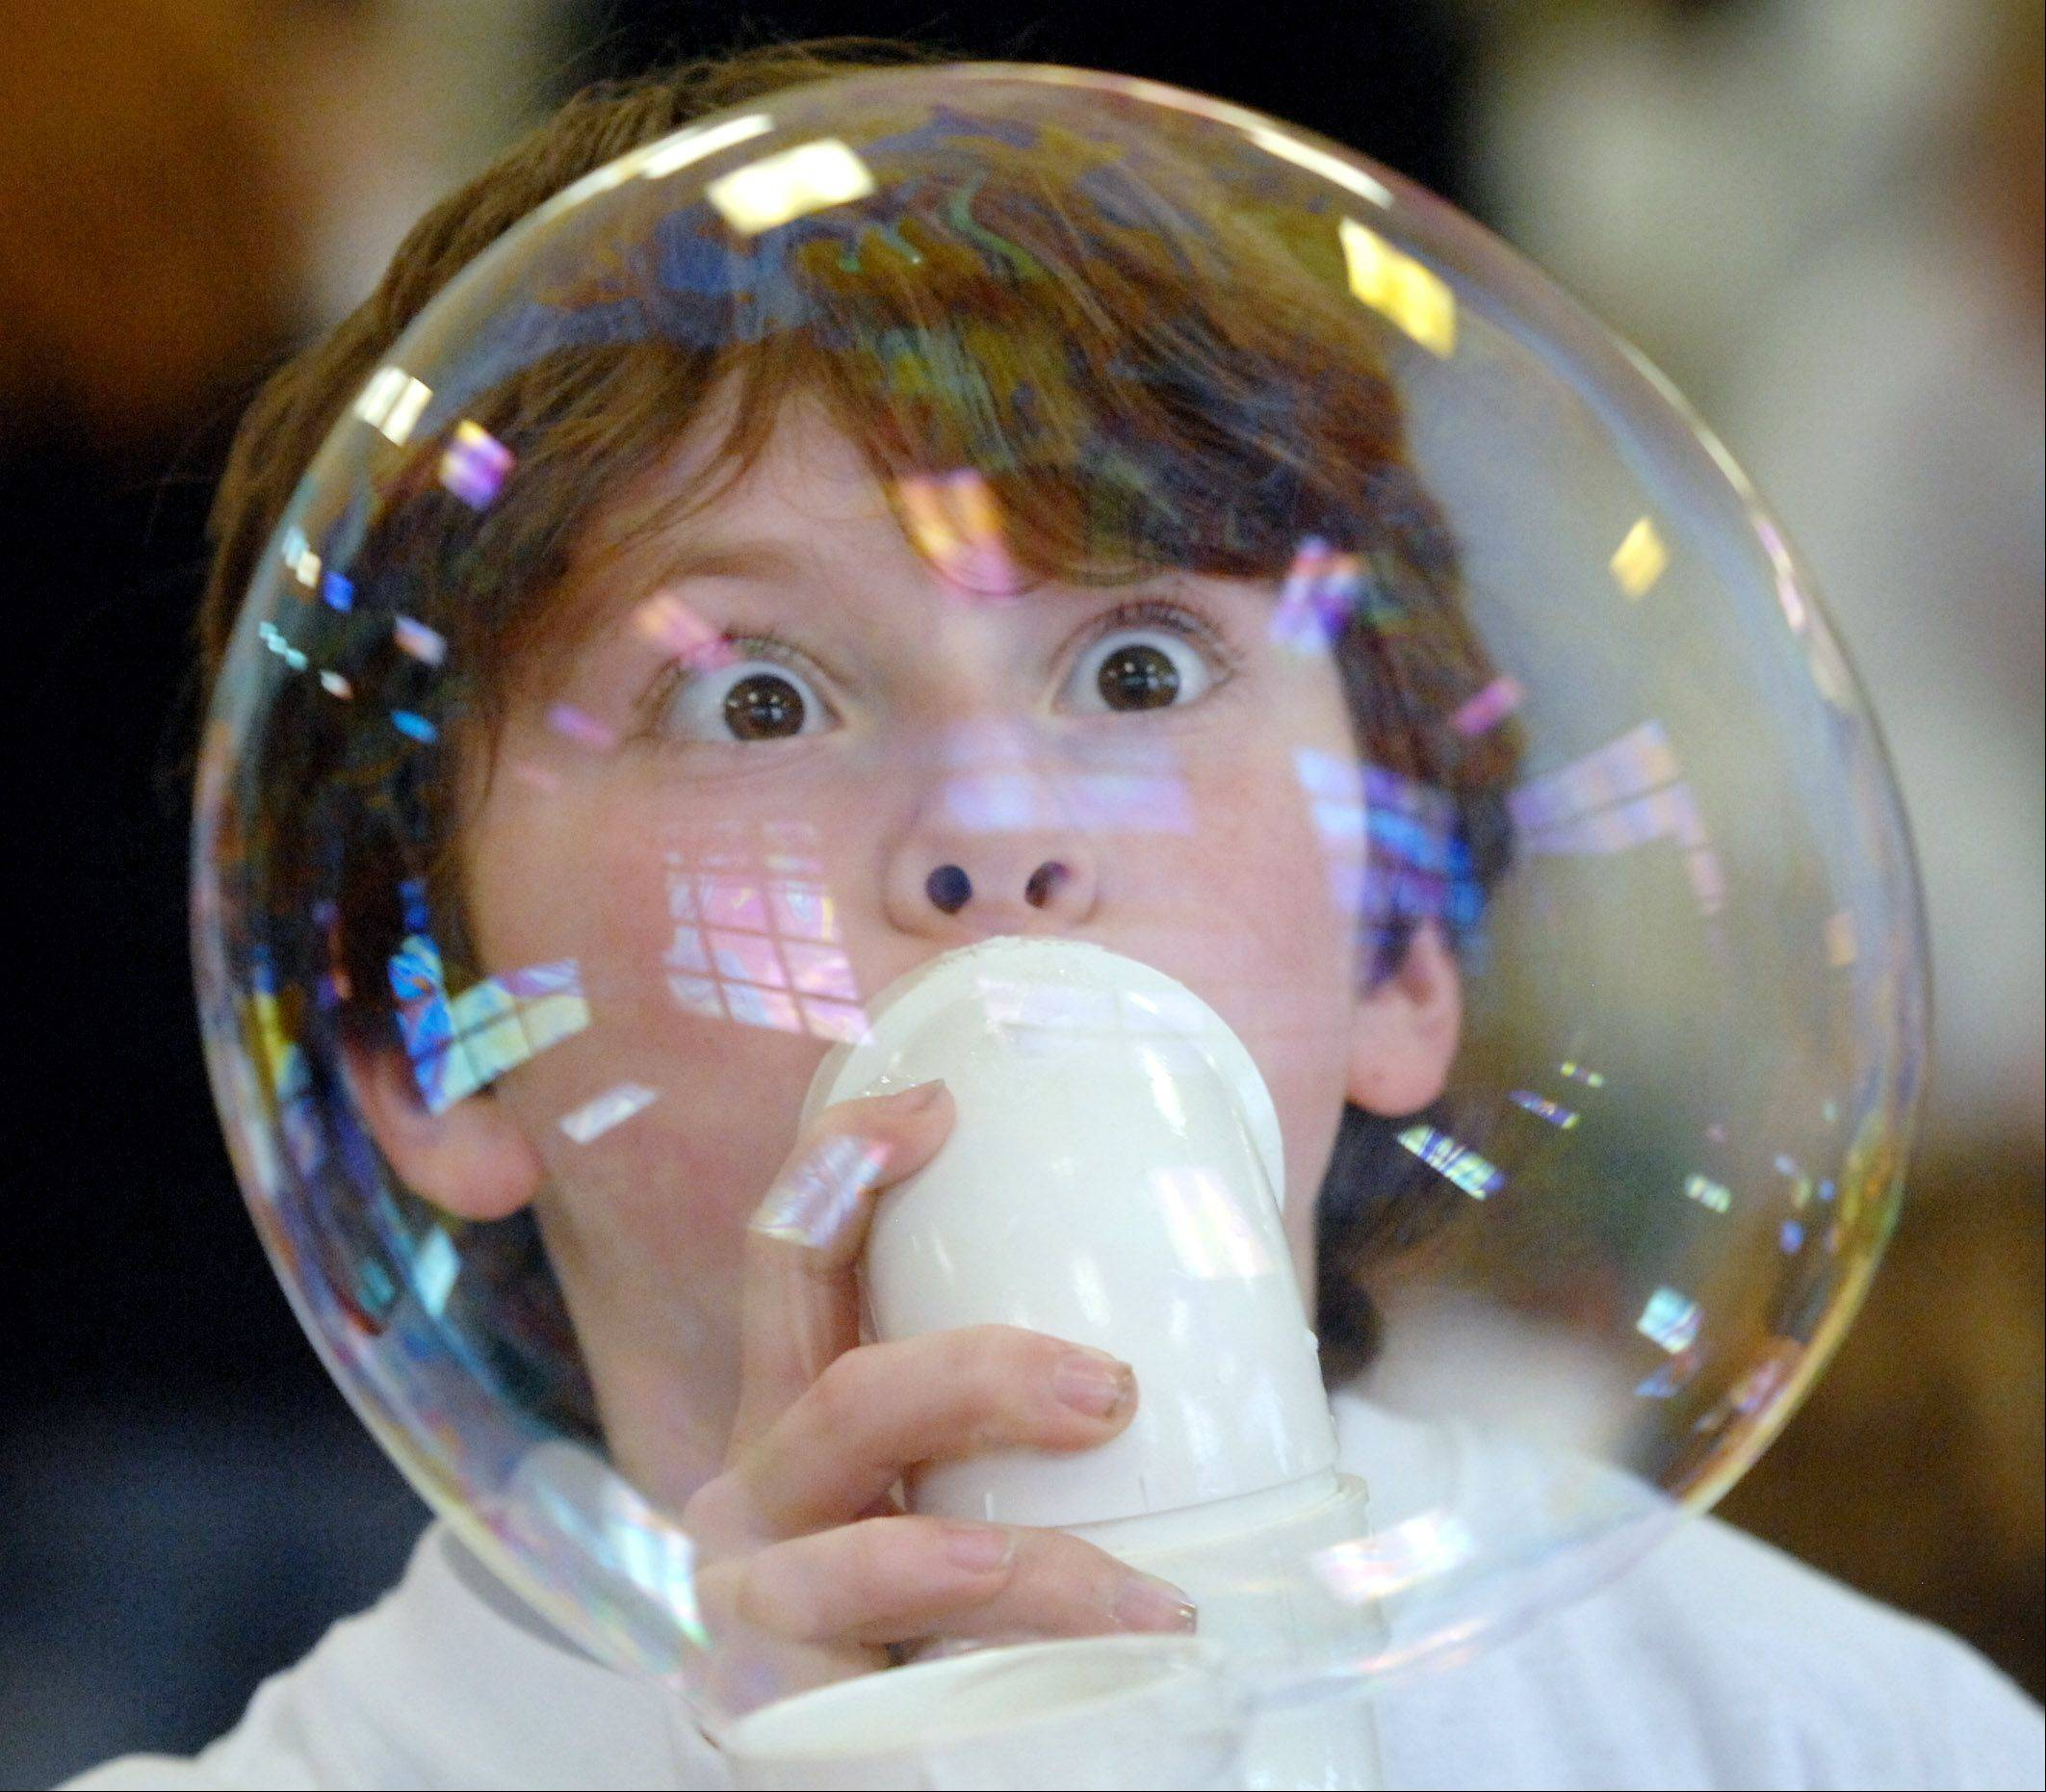 Fremont third grade student Kyle Appelhans gets a close look at a large soap bubble he's blowing during District 79's STEAM Teams program at the Mundelein school. The after-school program explores the connections between science, technology, engineering, art and math (STEAM).